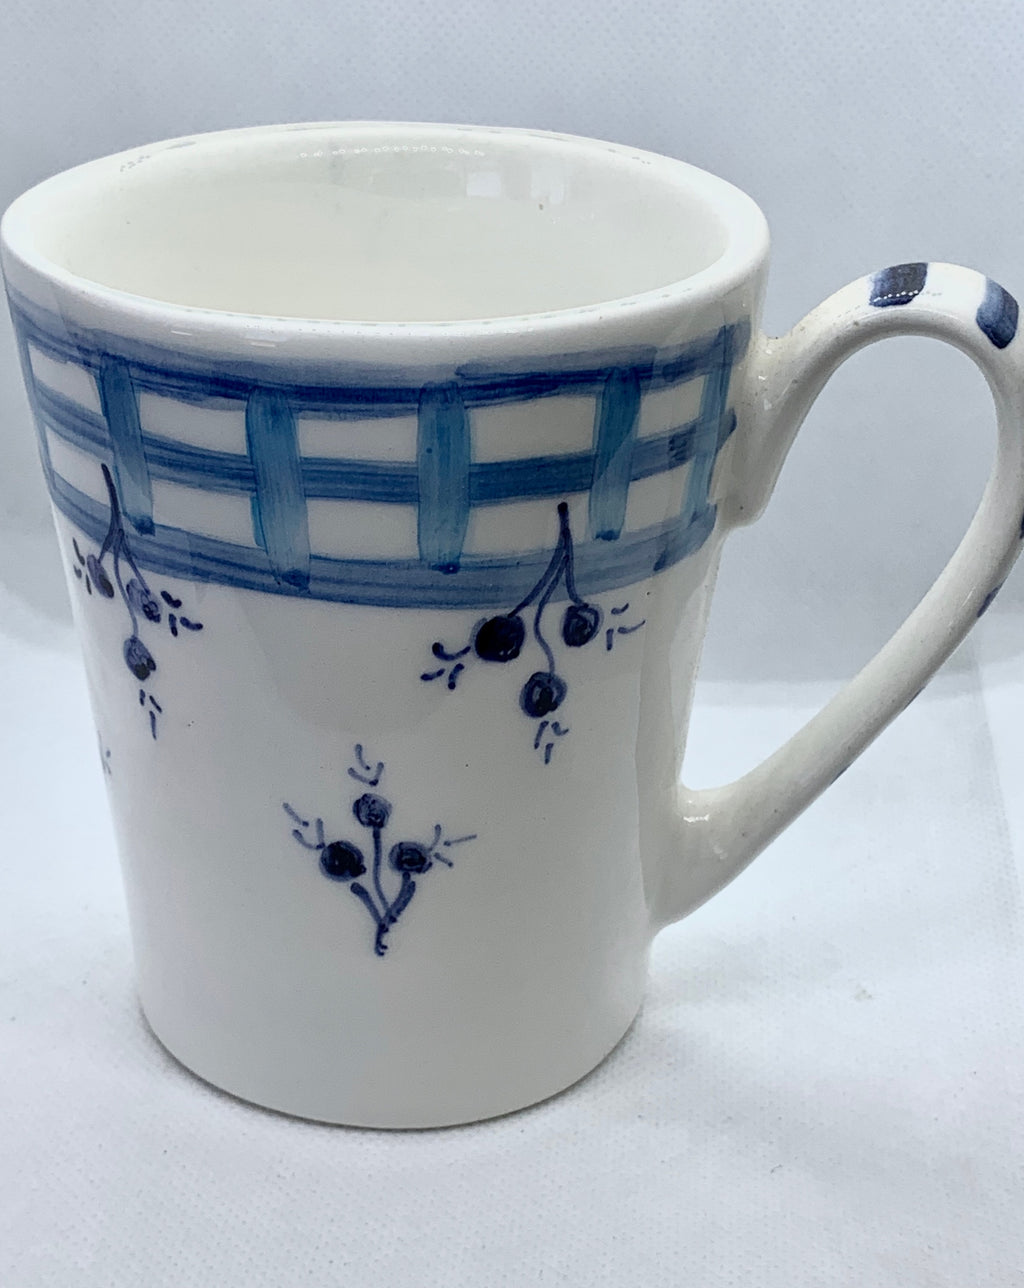 Ceramic mug with blue details